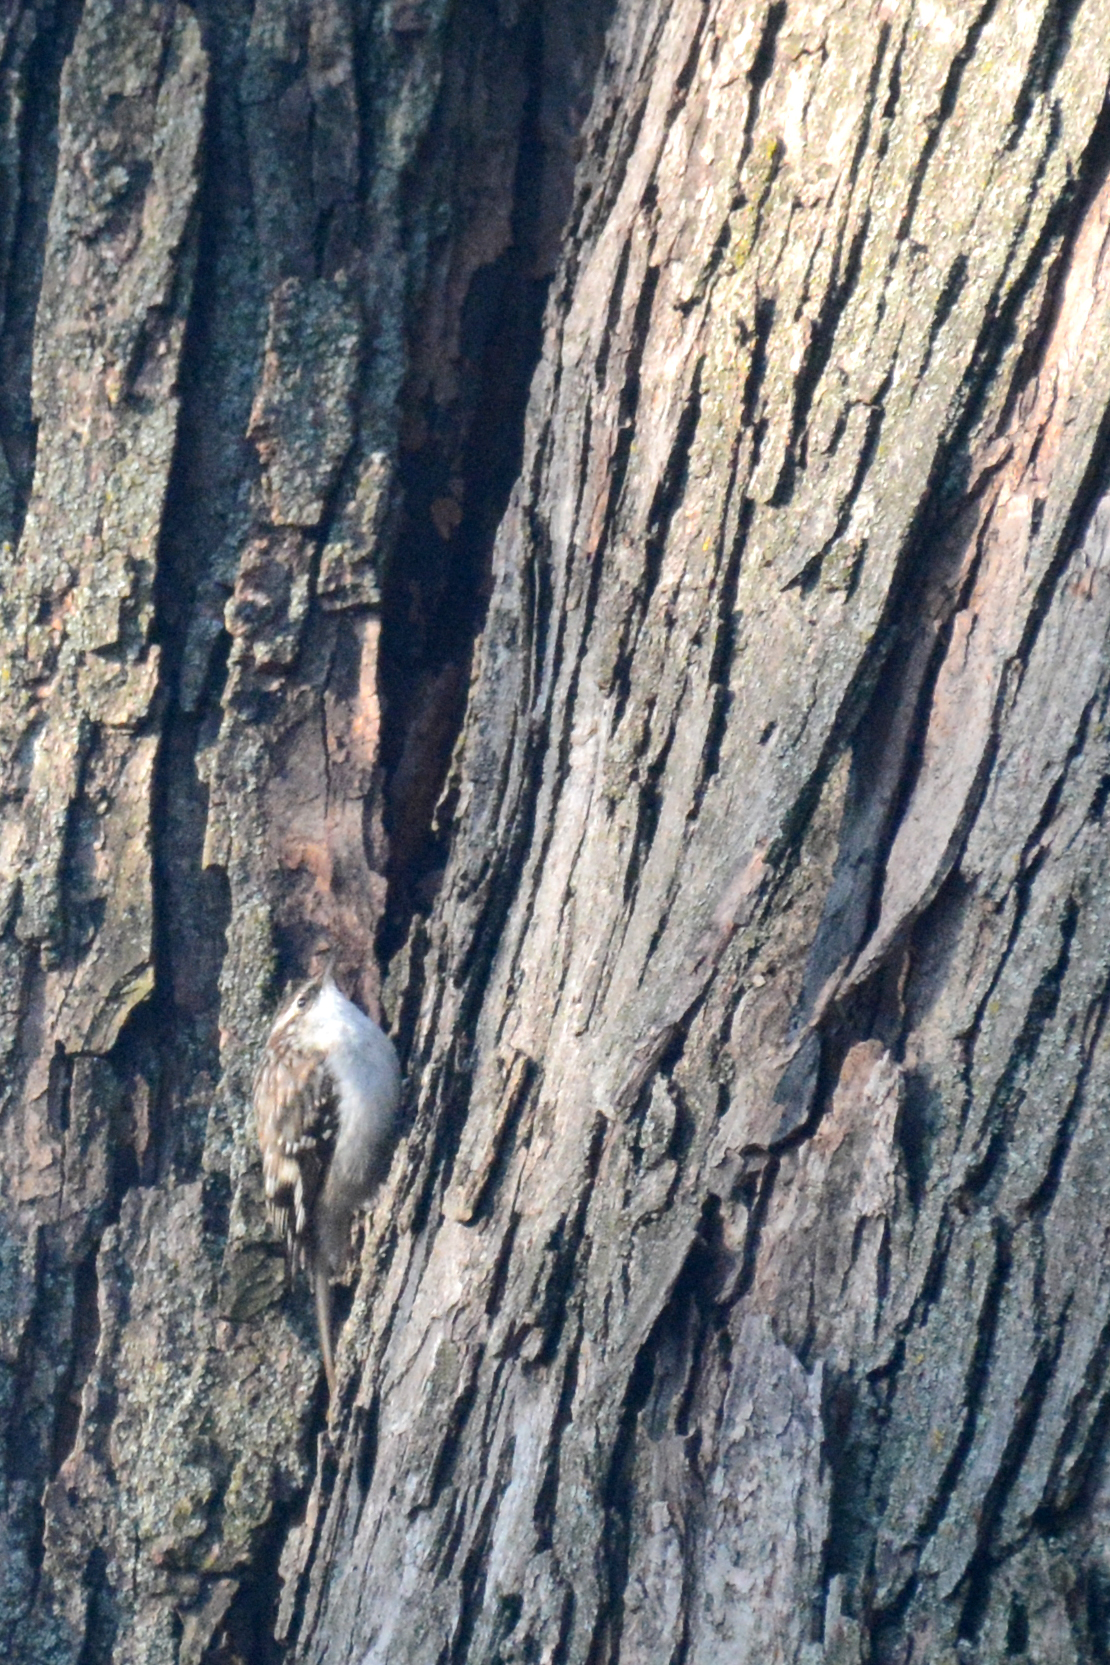 2016-04-14_backyard-browncreeper